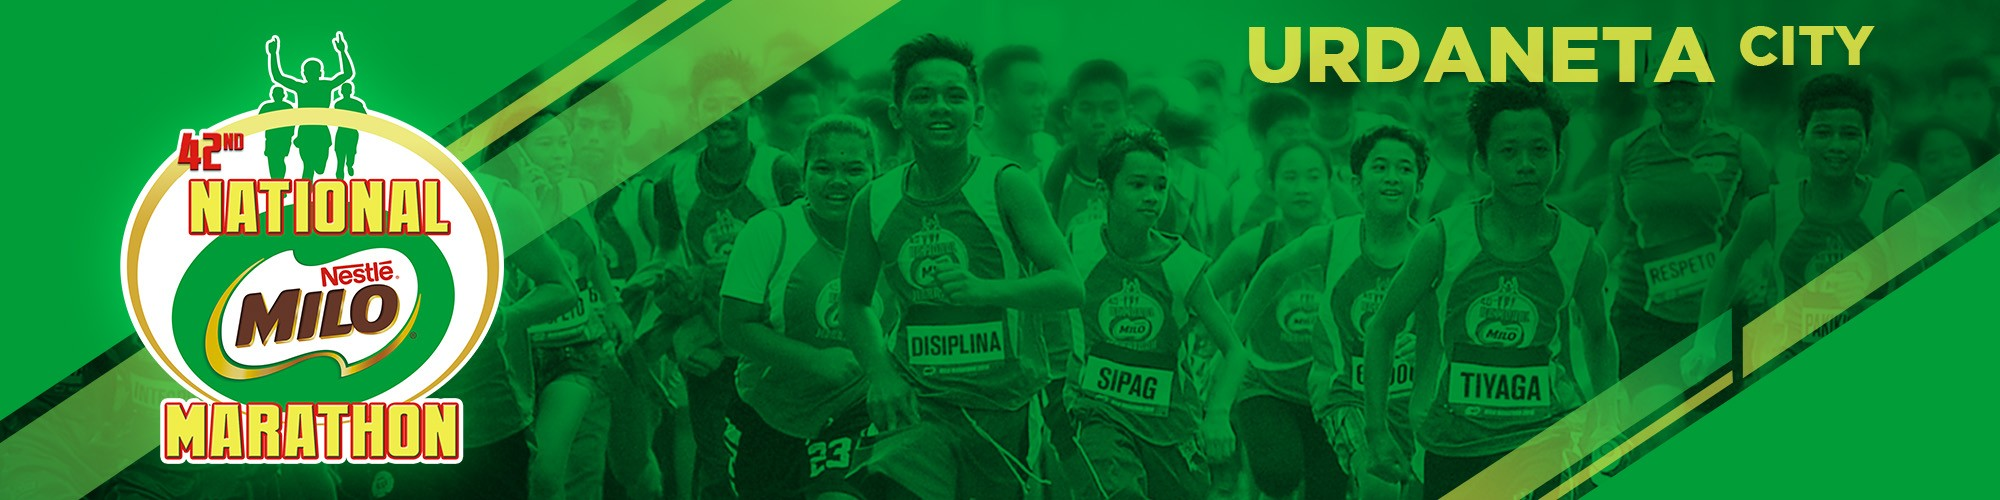 42nd National MILO Marathon - Urdaneta Leg